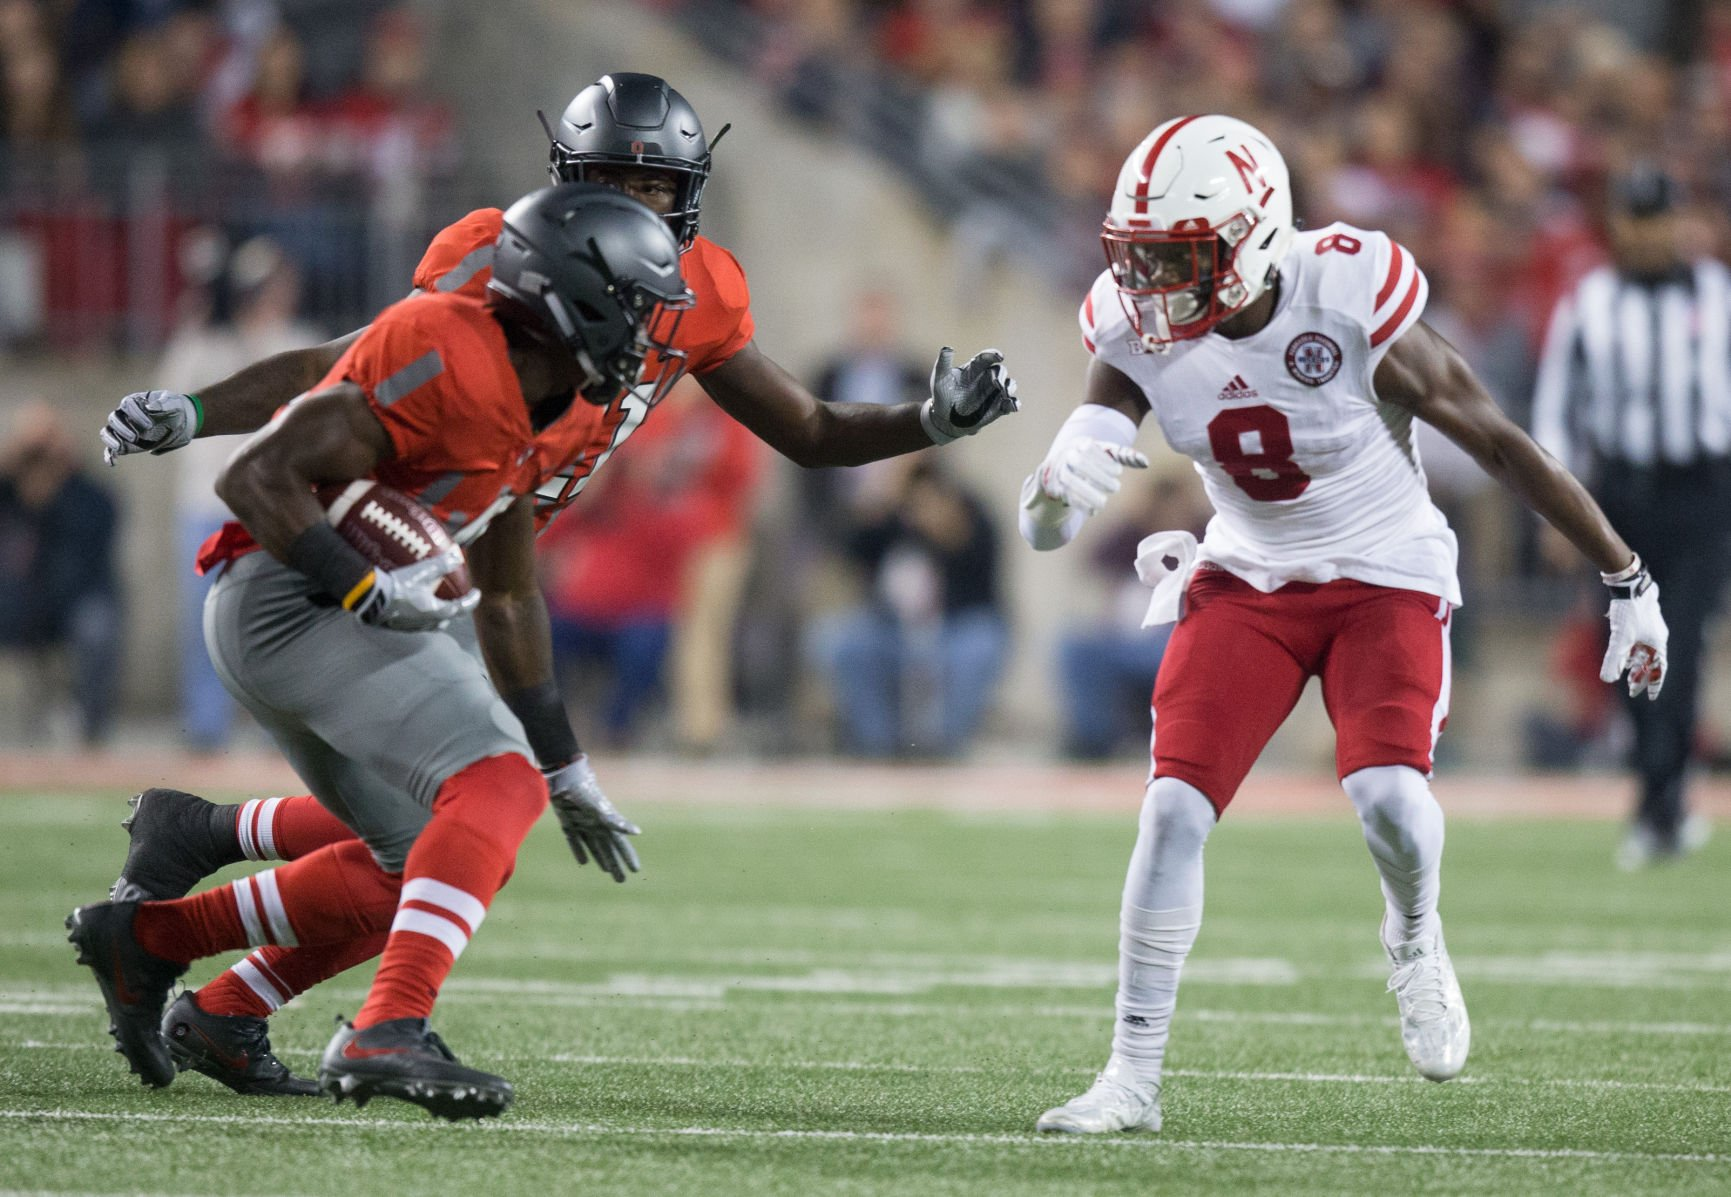 Nebraska holds on for win after furious late rally by Arkansas State